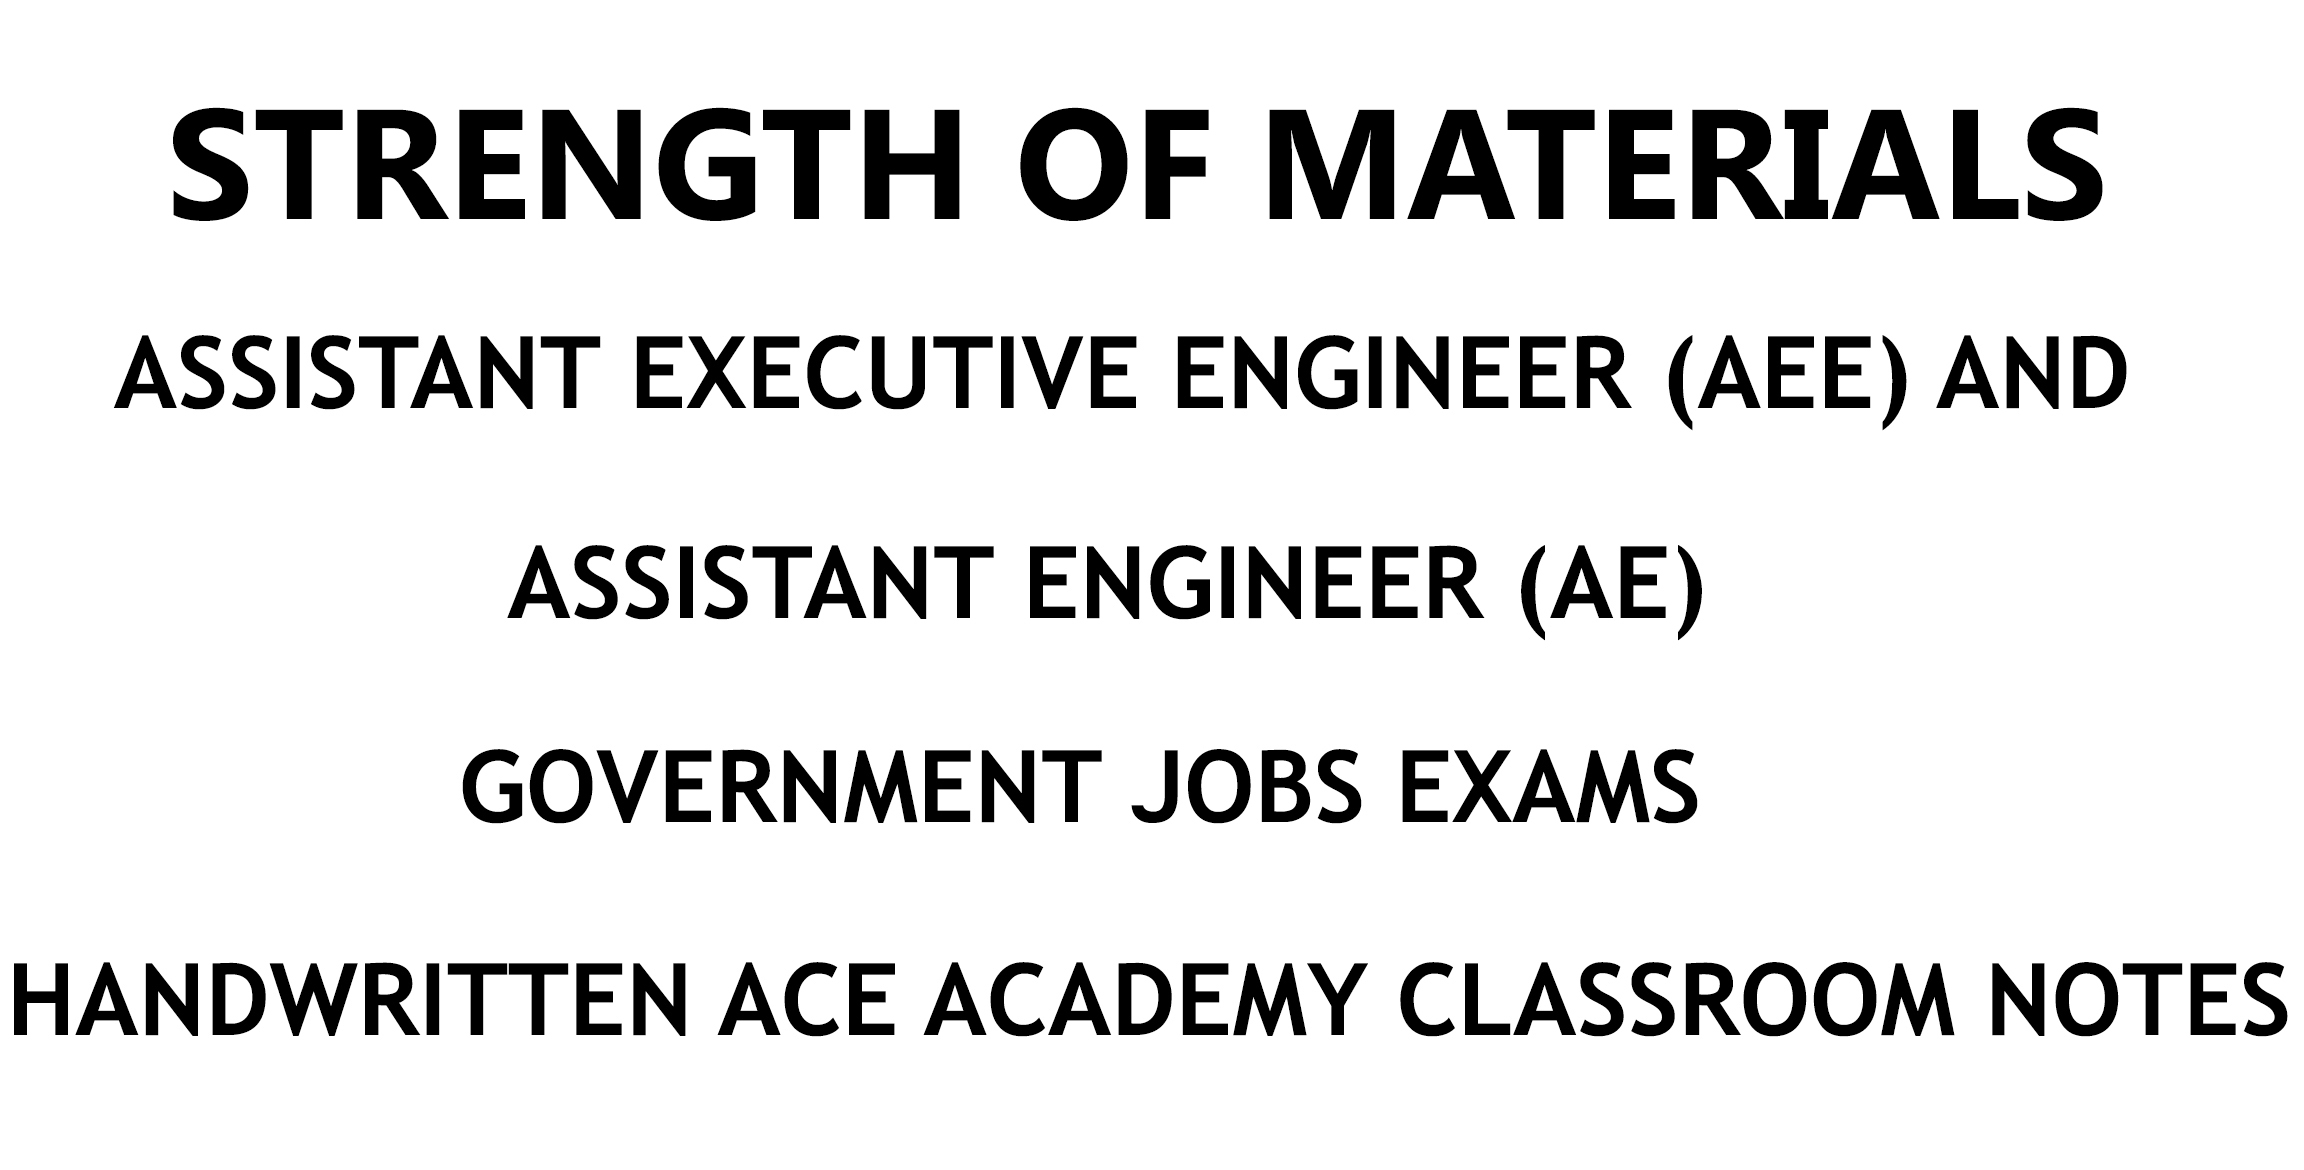 Strength of materials ae aee ace academy handwritten notes pdf fandeluxe Choice Image